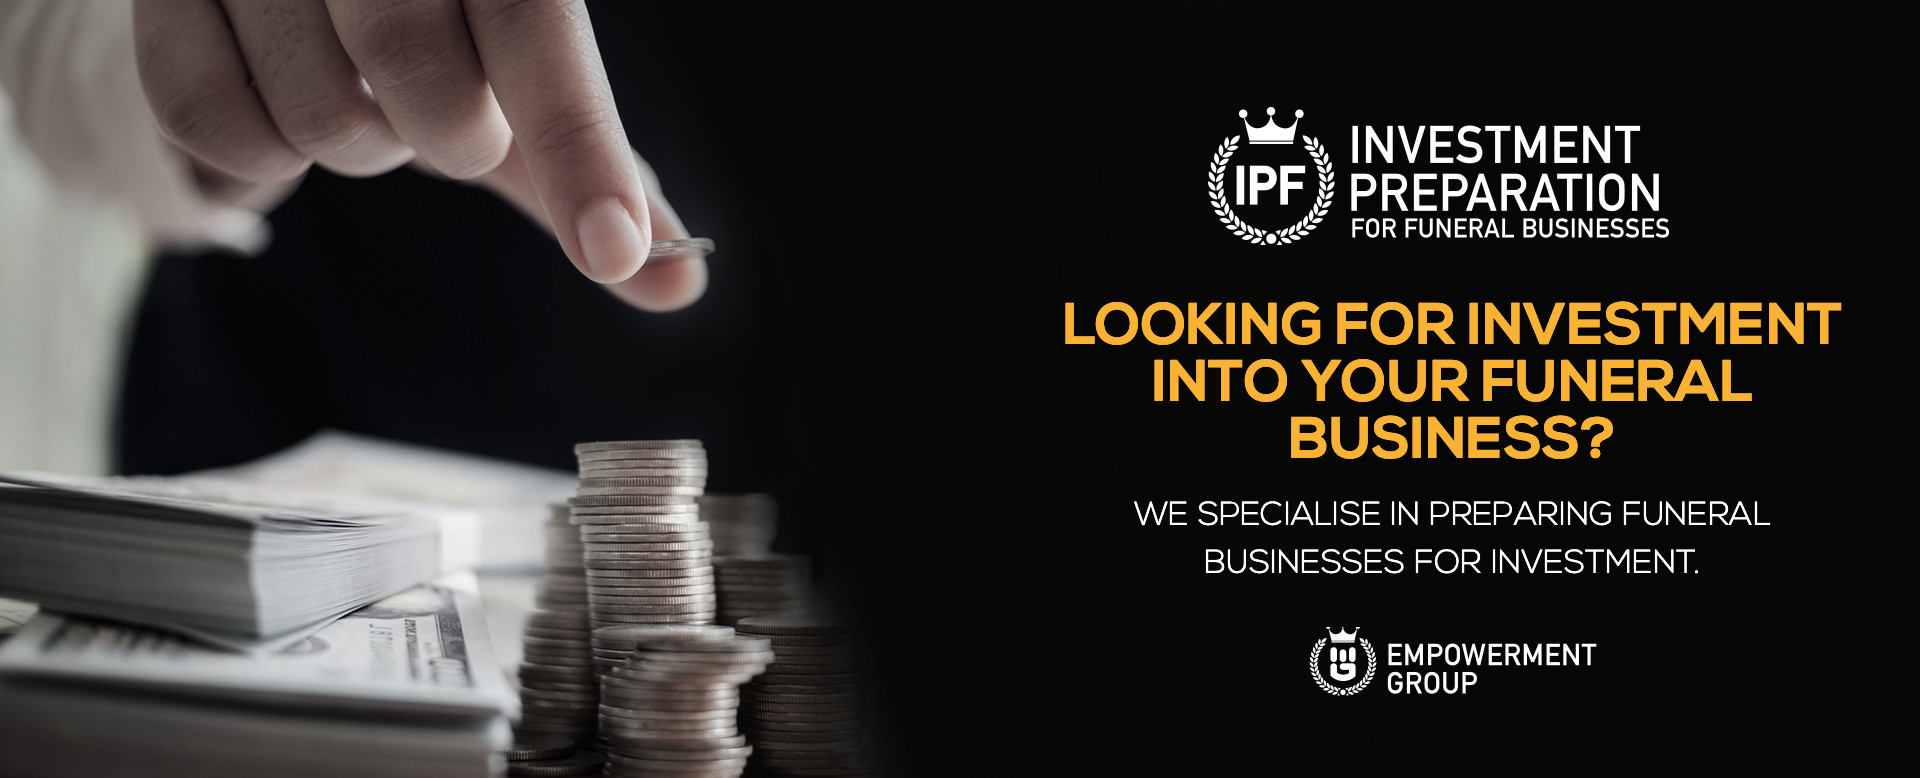 Investment Preparation for Funeral Businesses